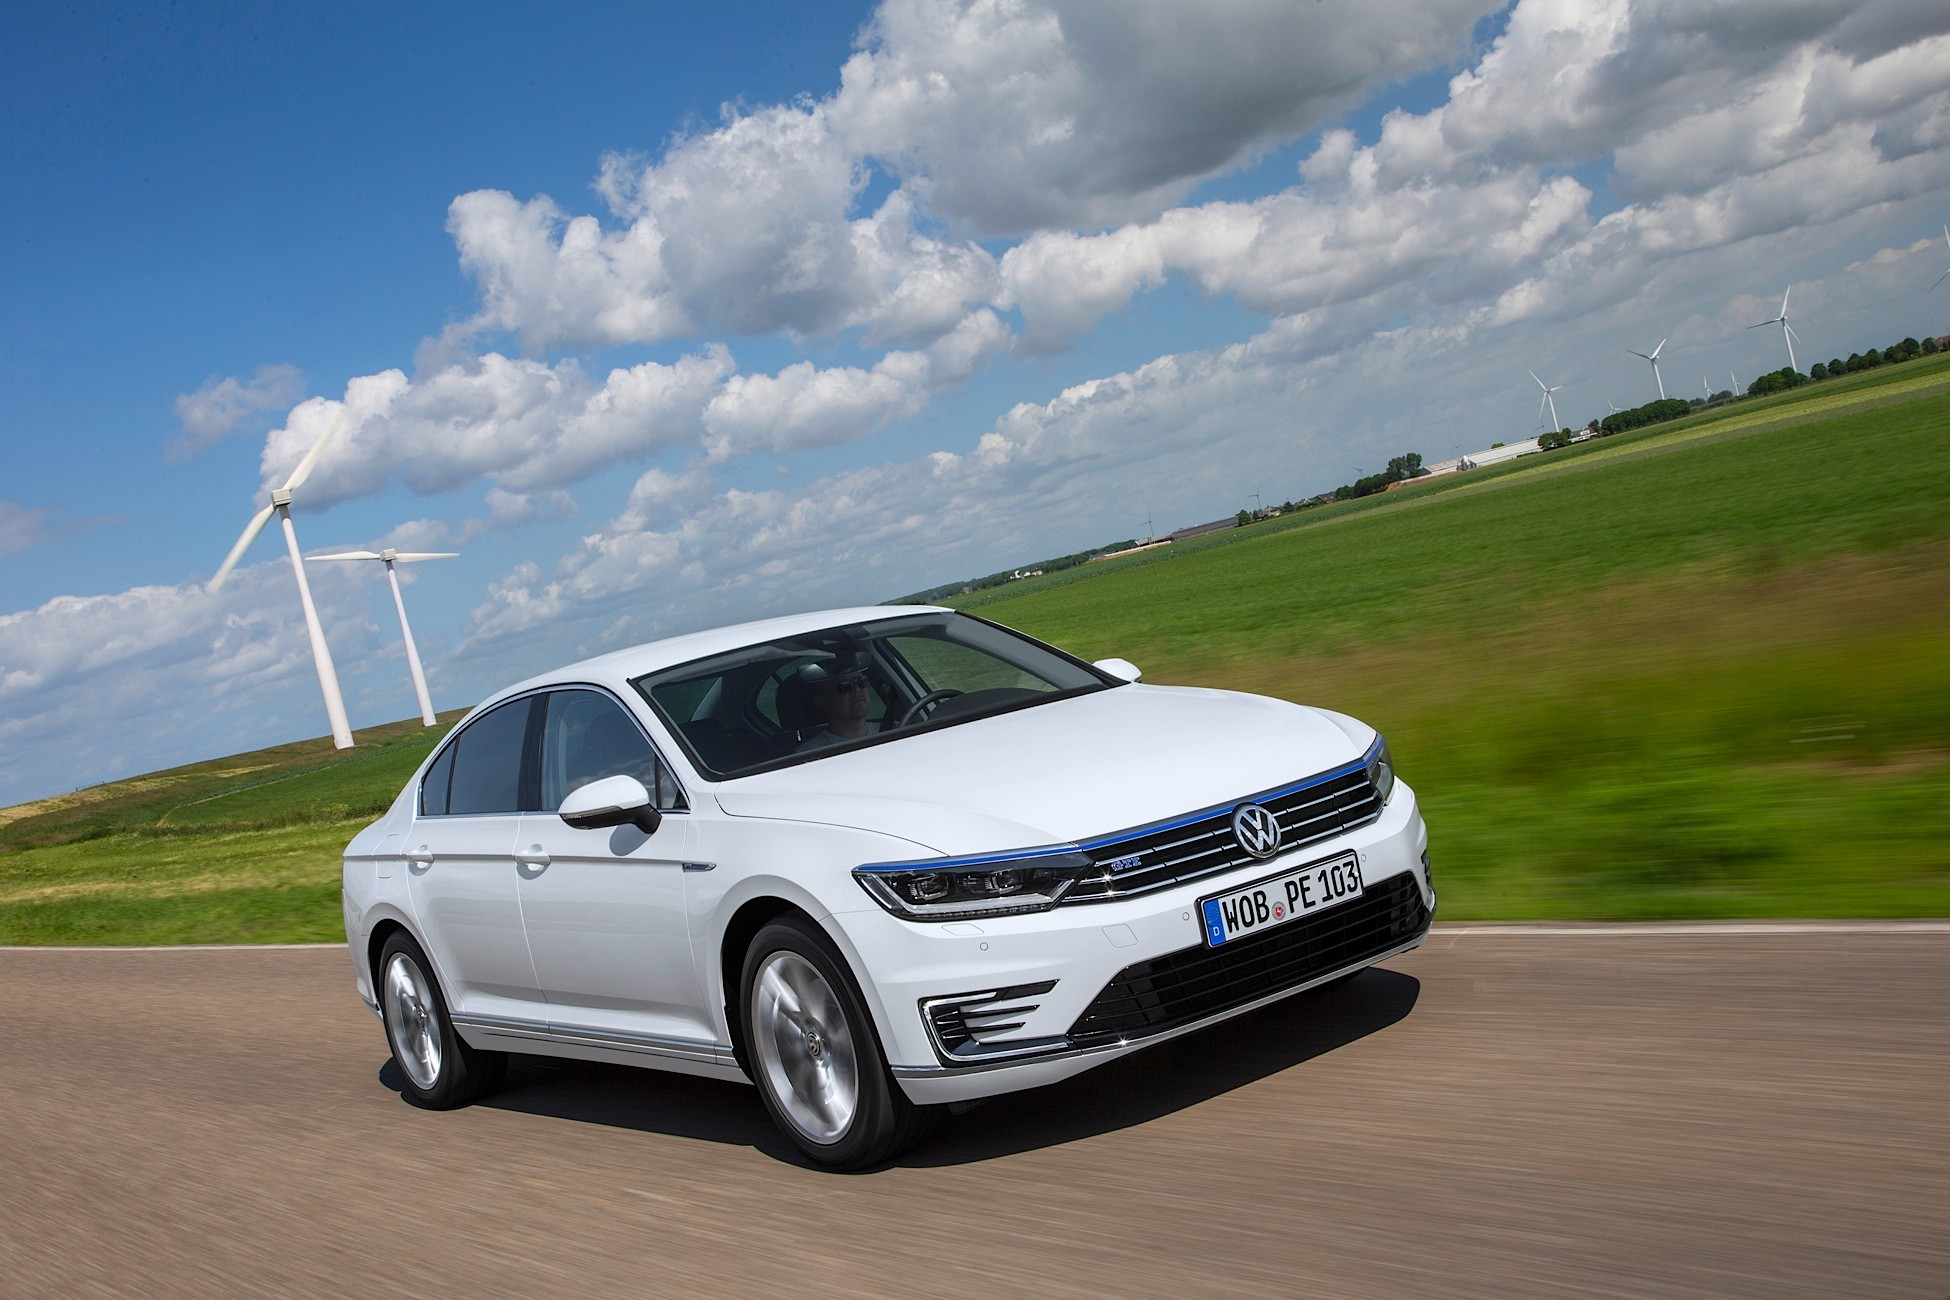 new passat gte launched as saloon and variant offers 50 km of electric range autoevolution. Black Bedroom Furniture Sets. Home Design Ideas